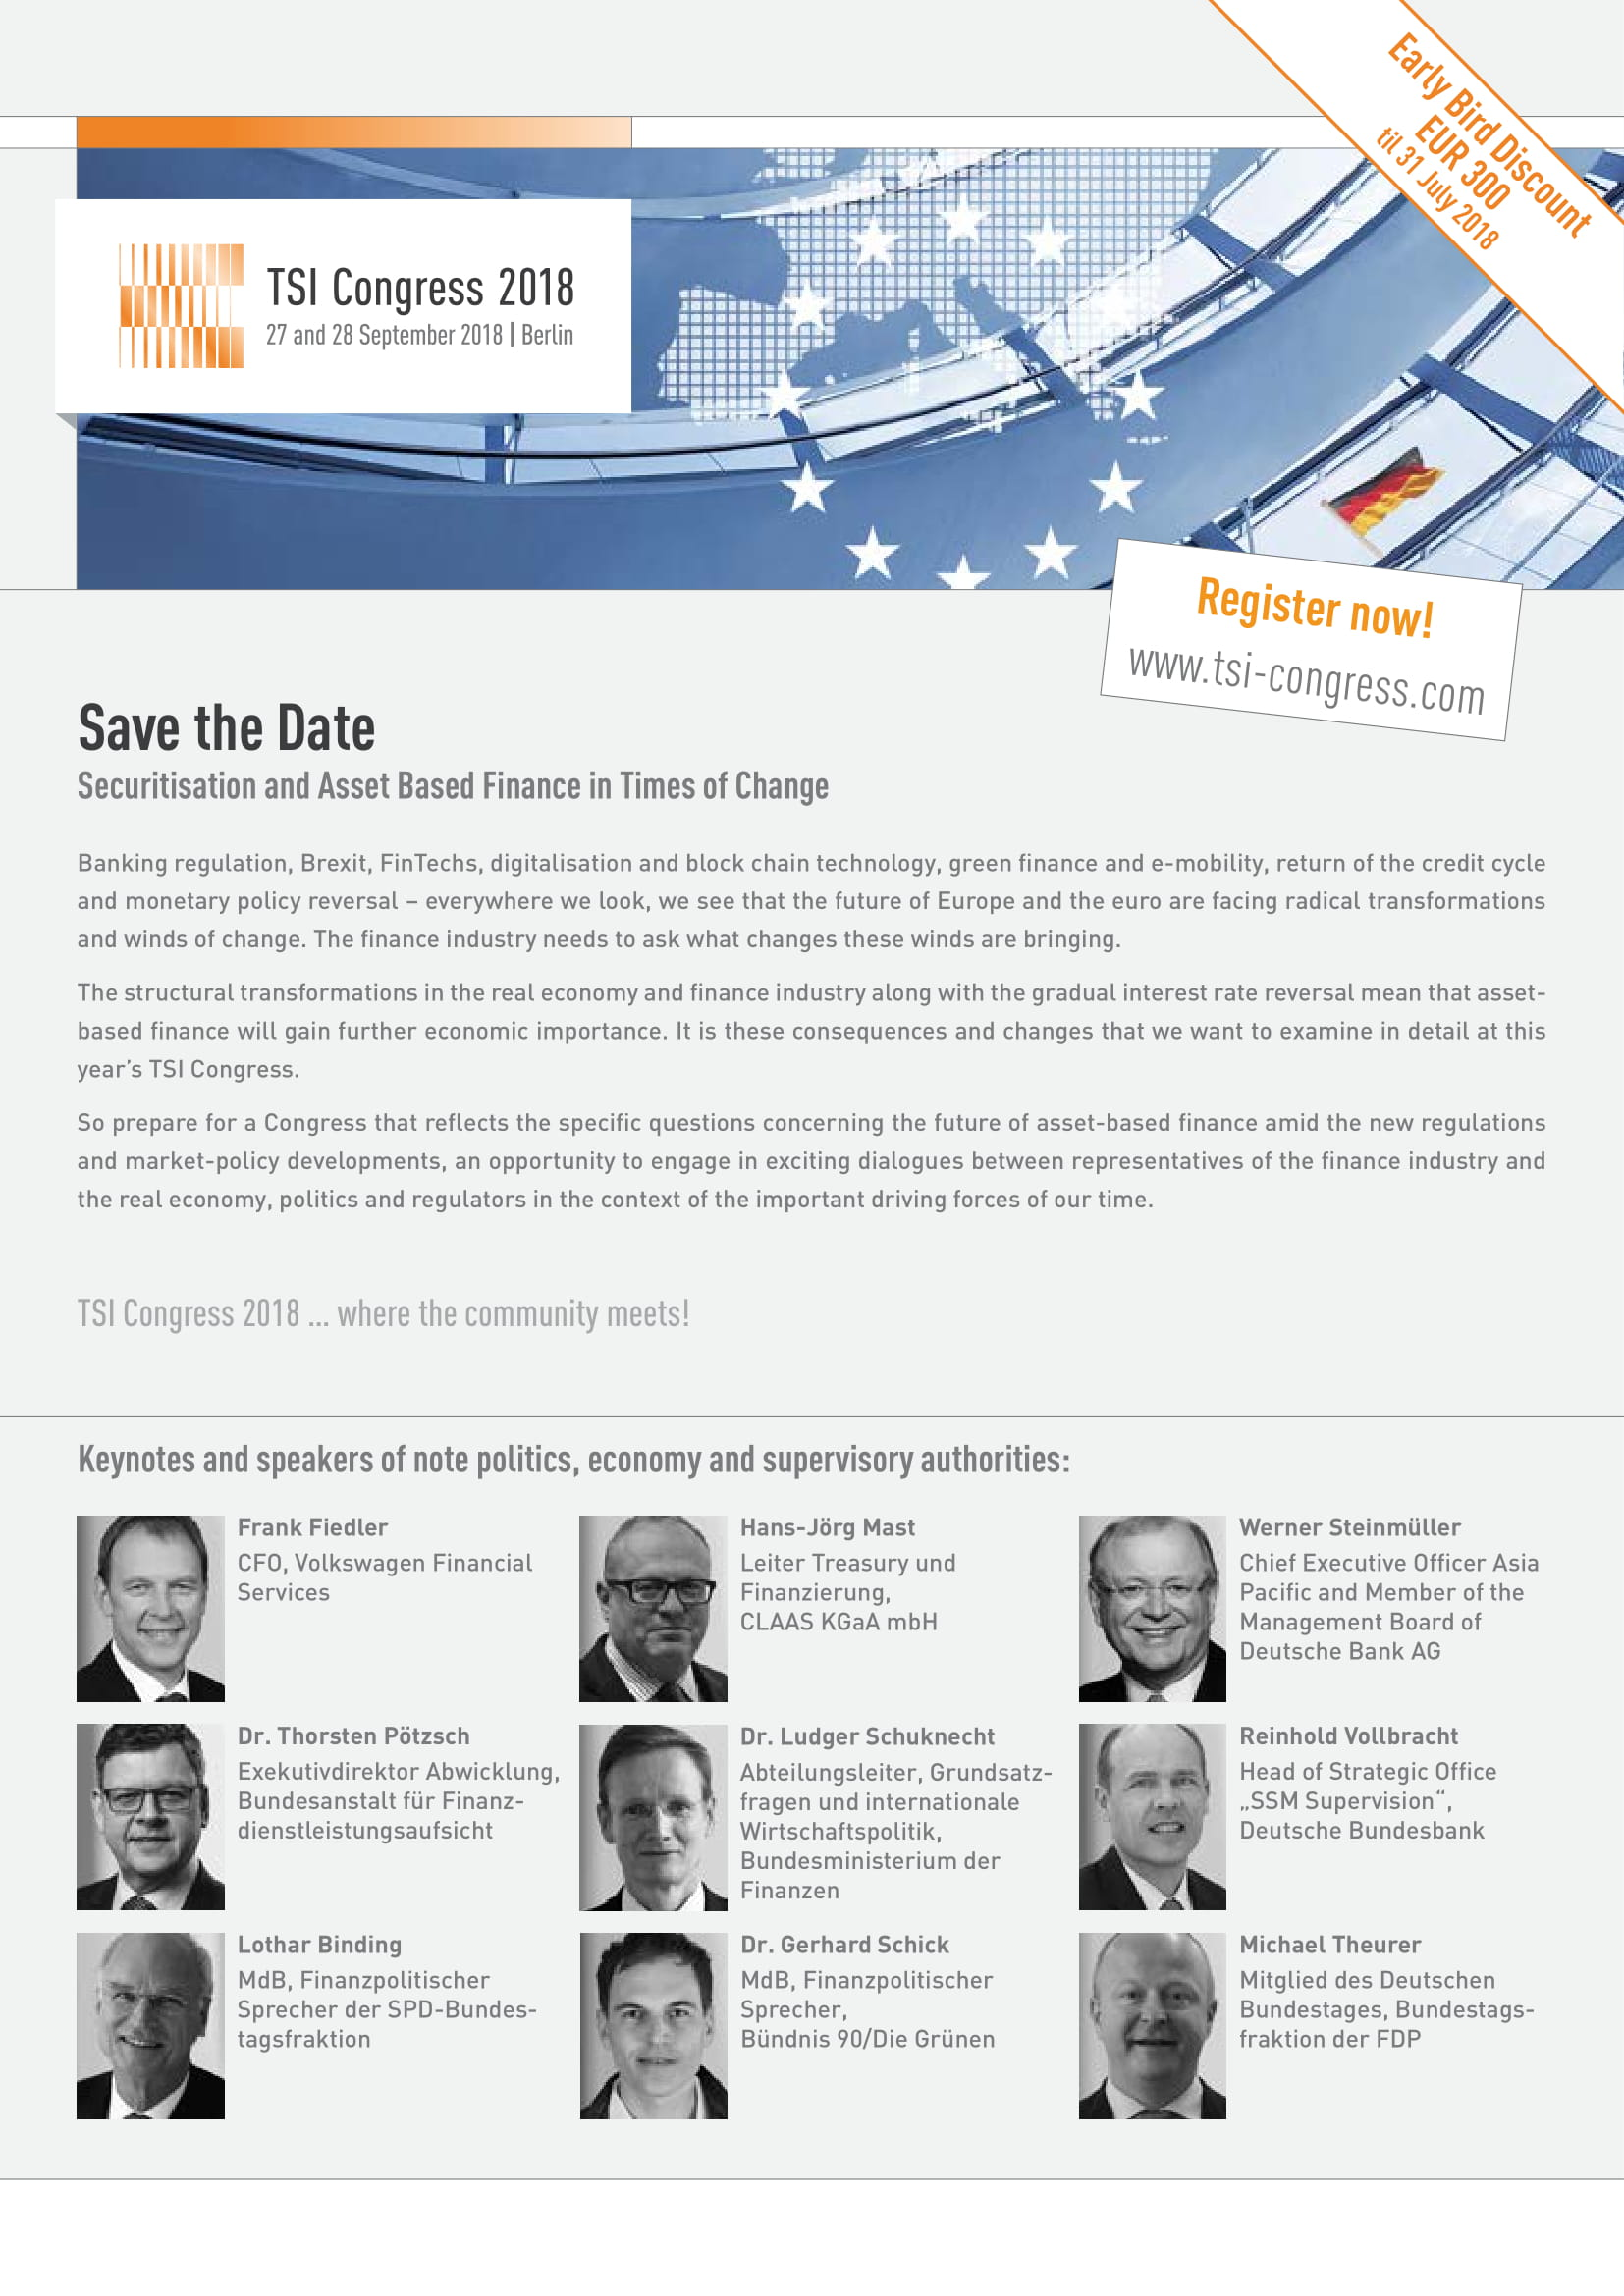 tsi congress save the date email example